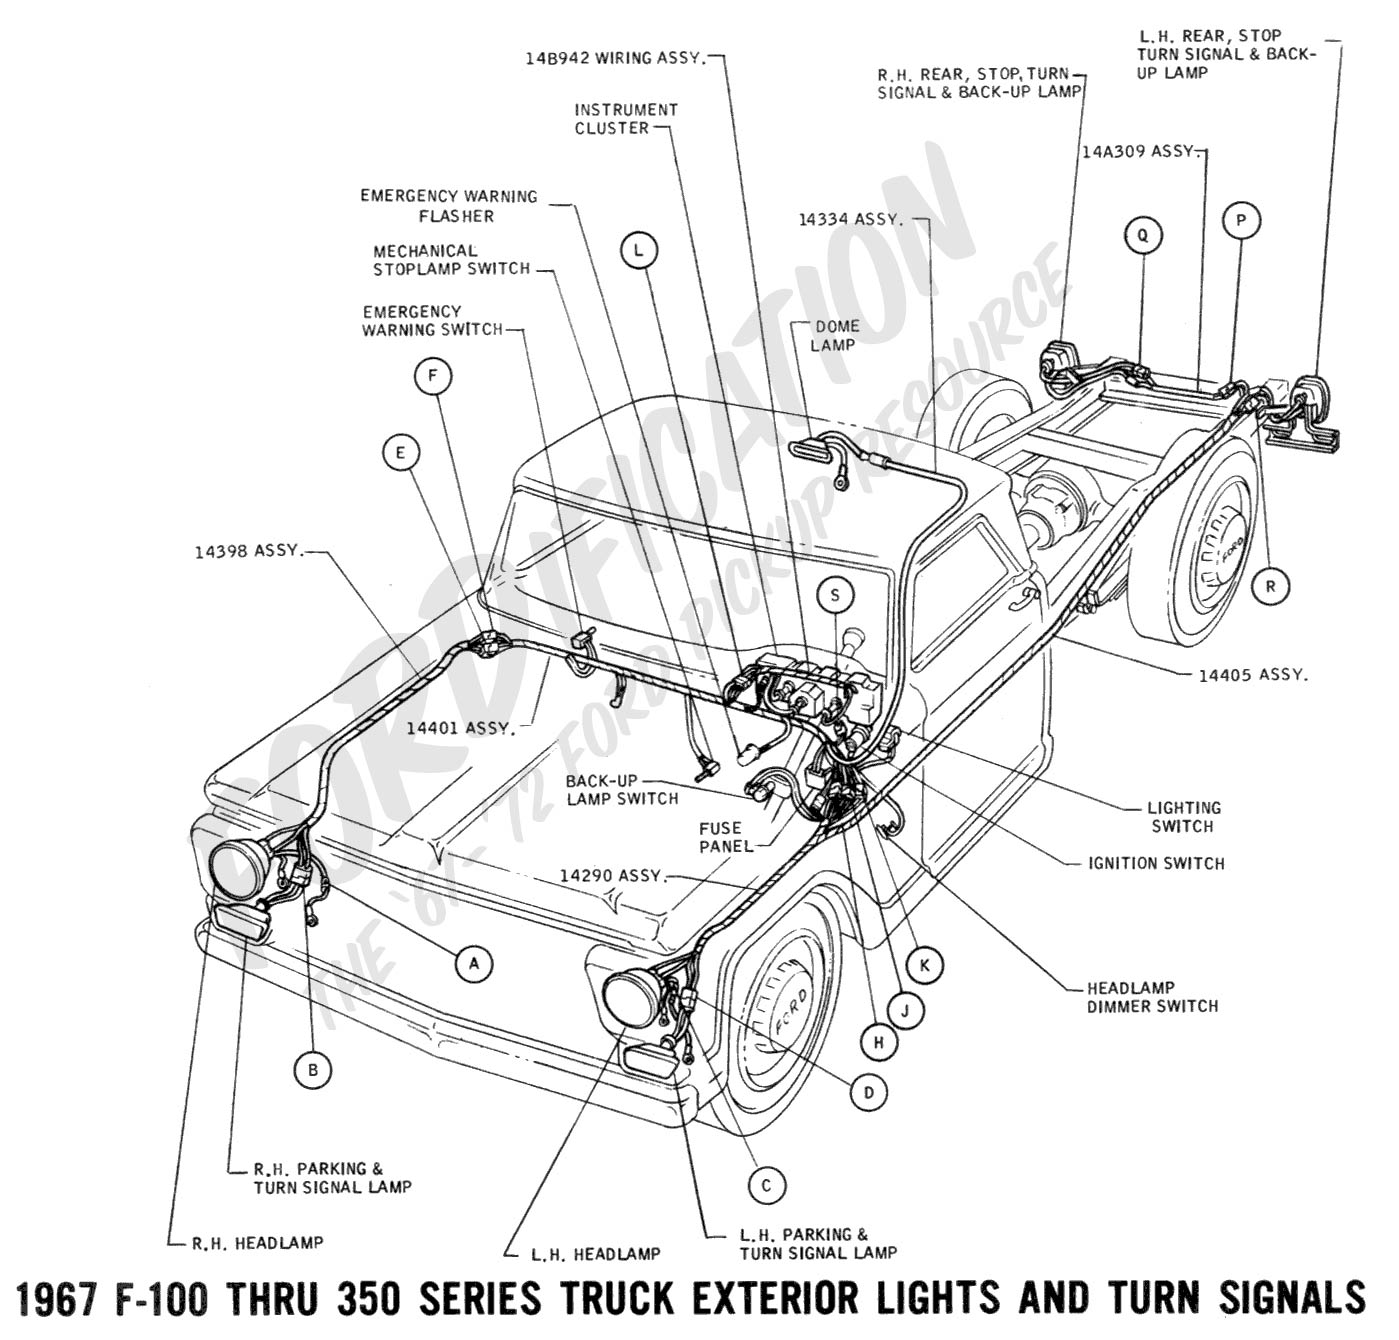 Chrysler 2 5 V6 Engine Diagram together with Ubbthreads also 2tcp8 99 F150 4 2l Knock Sensor Location further RepairGuideContent moreover 1988 Jeep Wrangler Engine Wiring Diagram. on 5 7 liter toyota engine starter